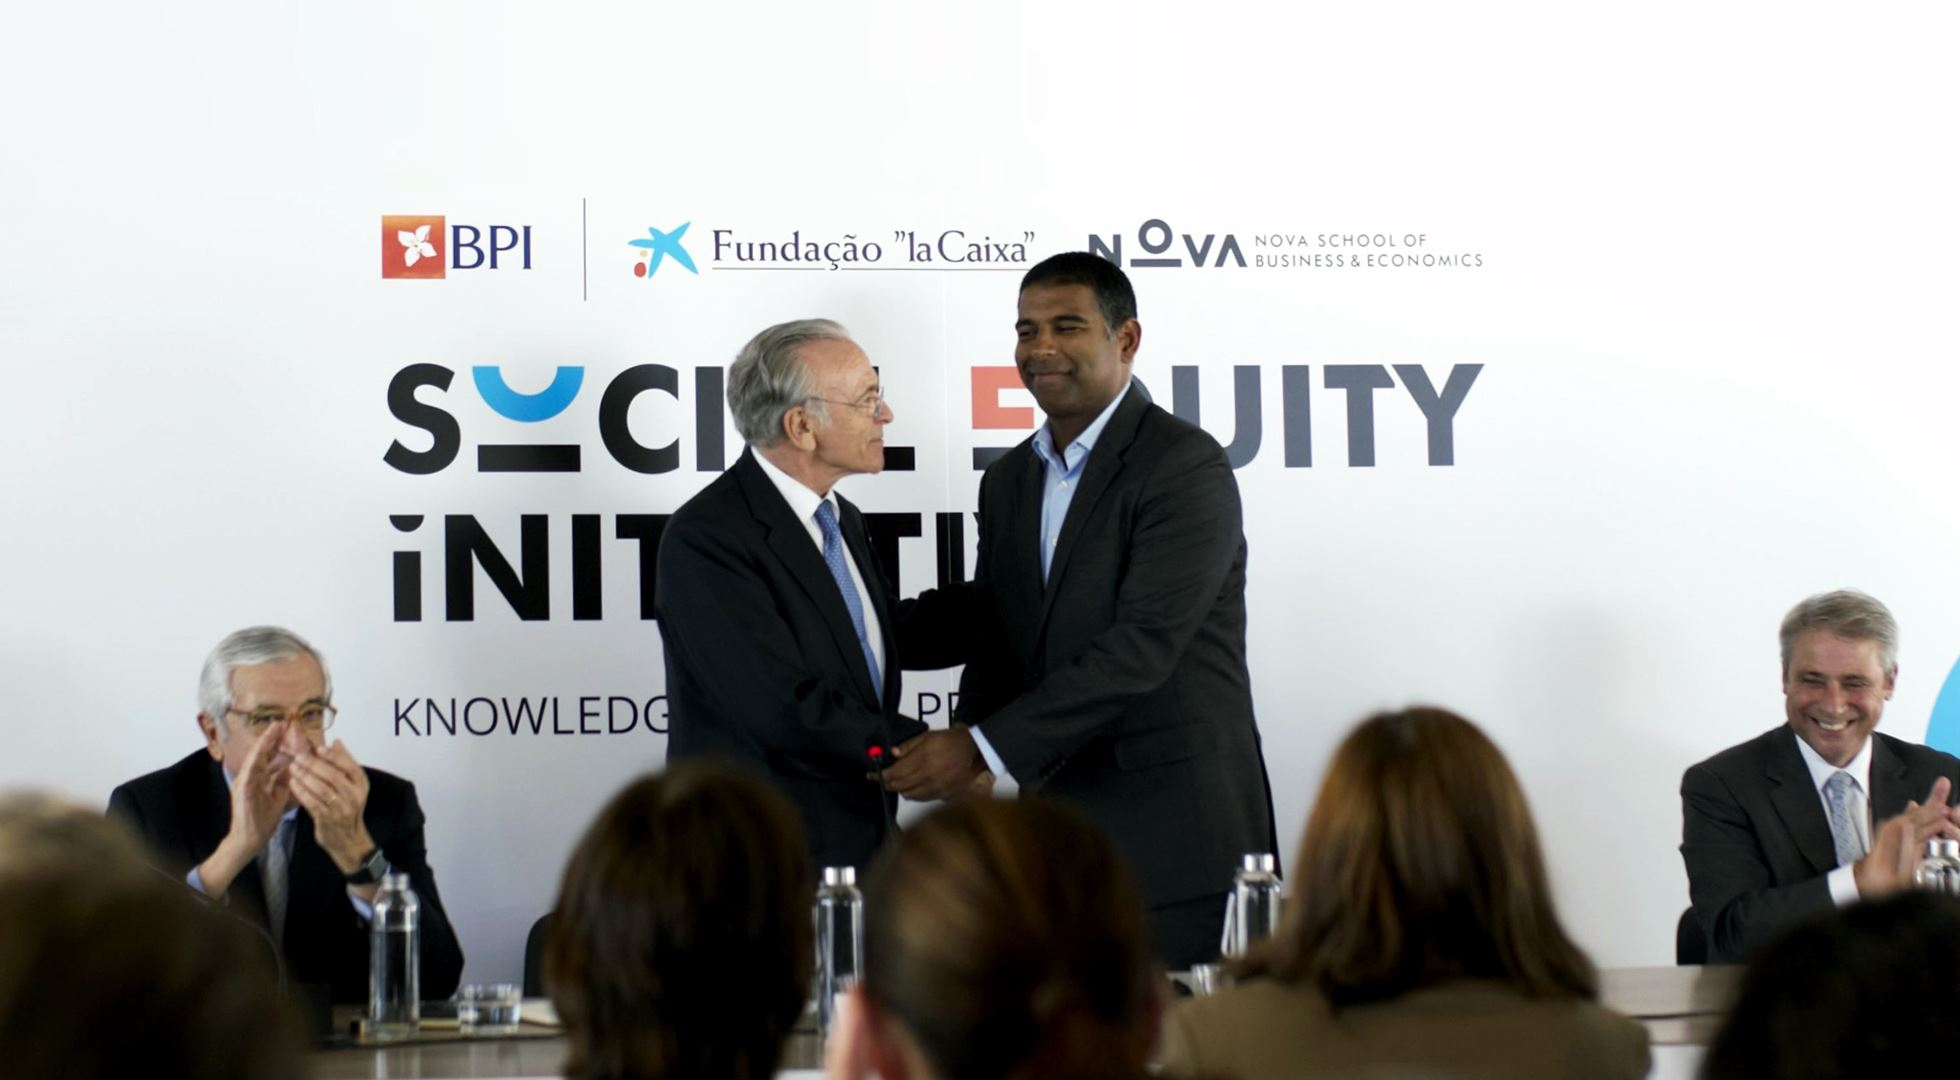 """La Caixa"" Foundation, BPI, and Nova SBE Create a Social Equity Initiative"